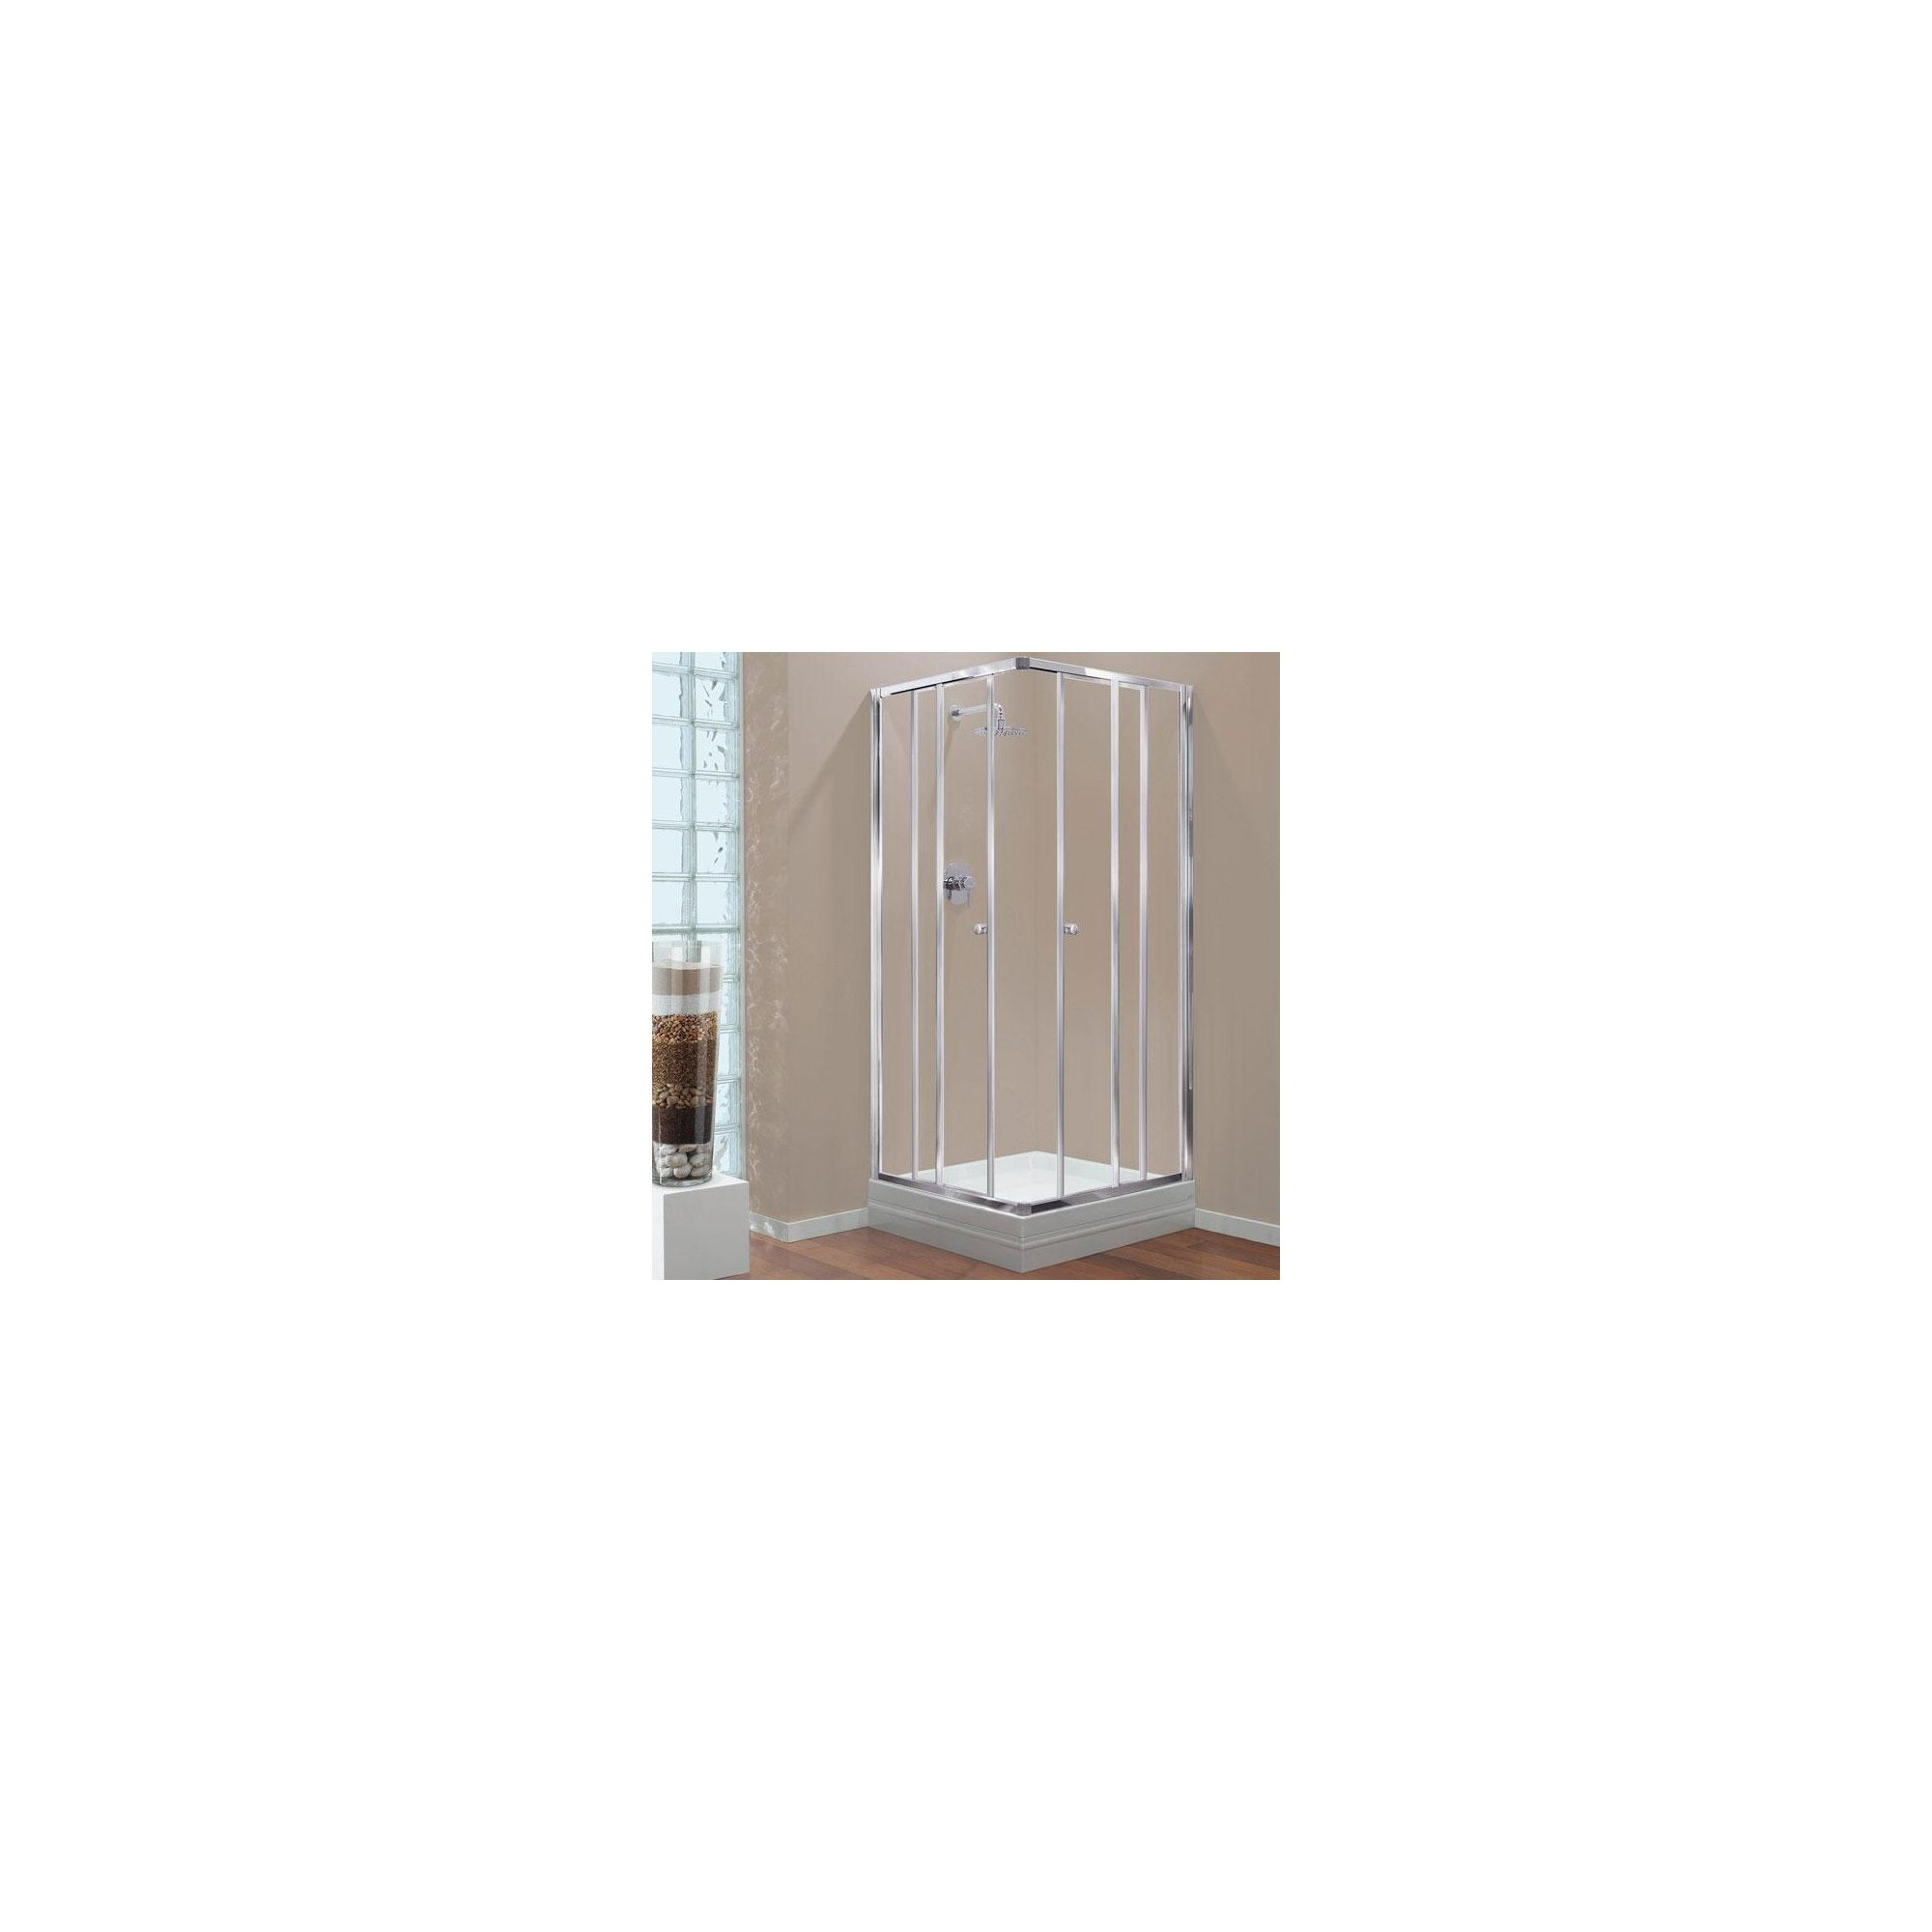 Coram GB Corner Entry Door Shower Enclosure, 800mm x 800mm, Standard Tray, 4mm Glass, Chrome Frame at Tesco Direct